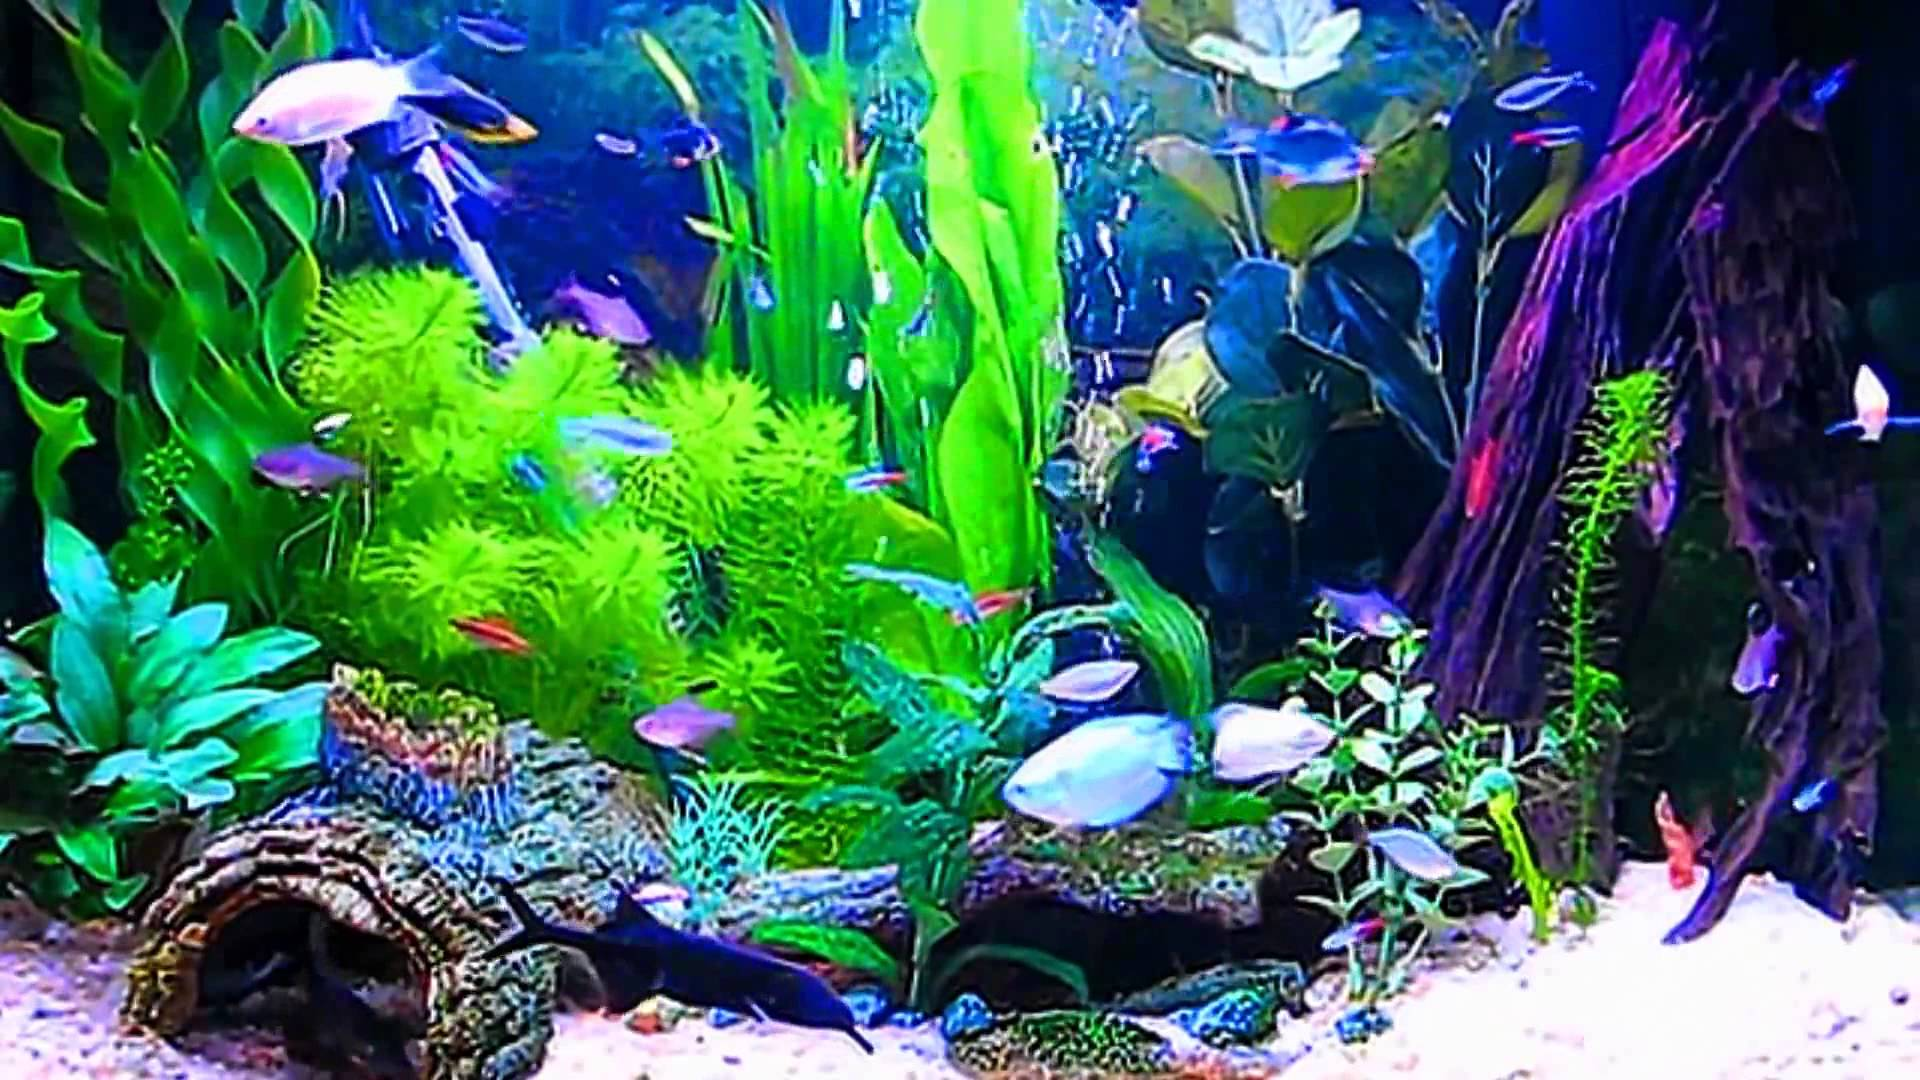 aquarium wallpaper hd - photo #24